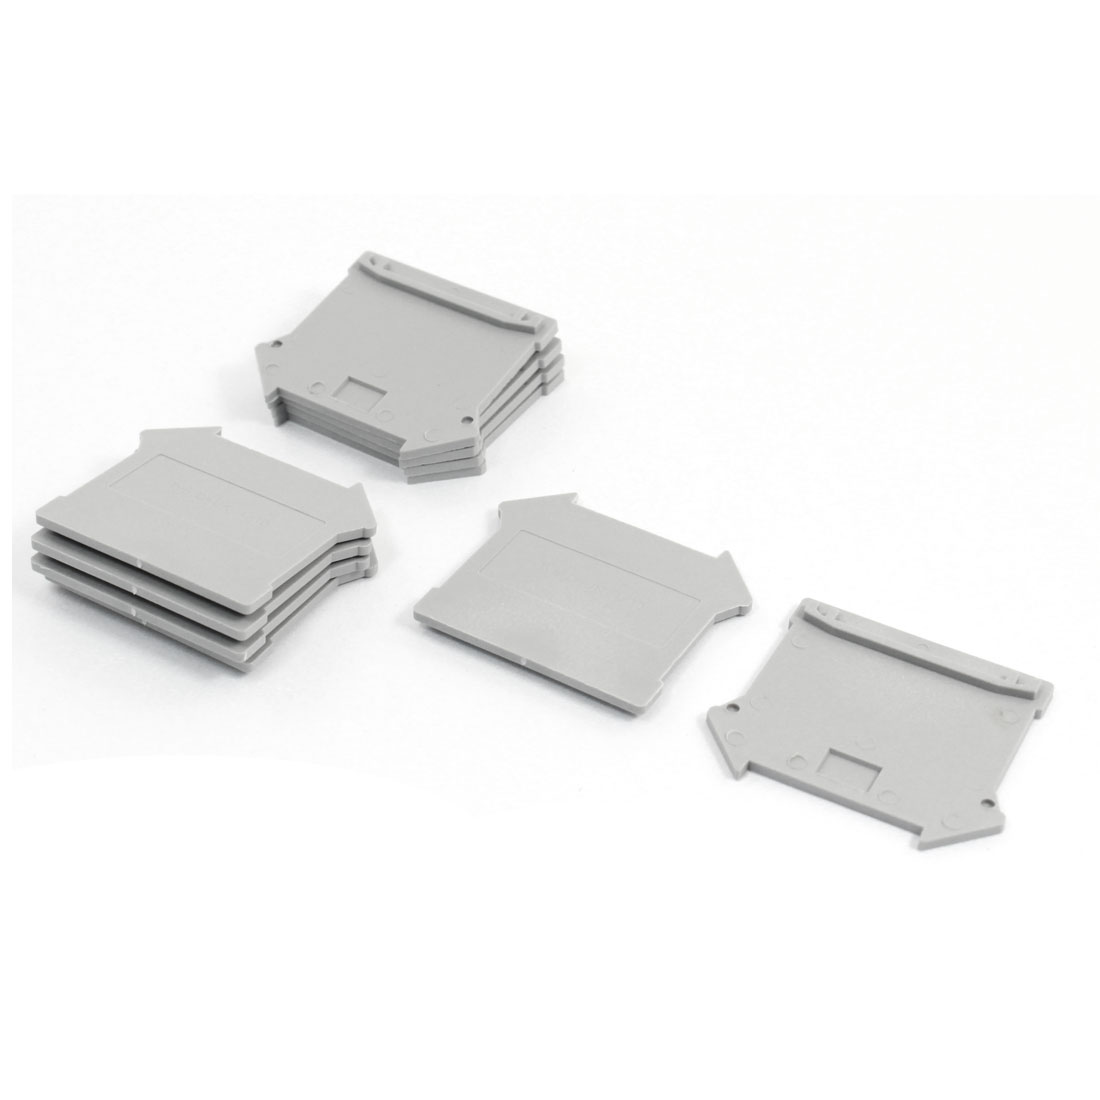 10Pcs Gray Plastic Partition End Plates UK 4/10 for 10N Terminal Block